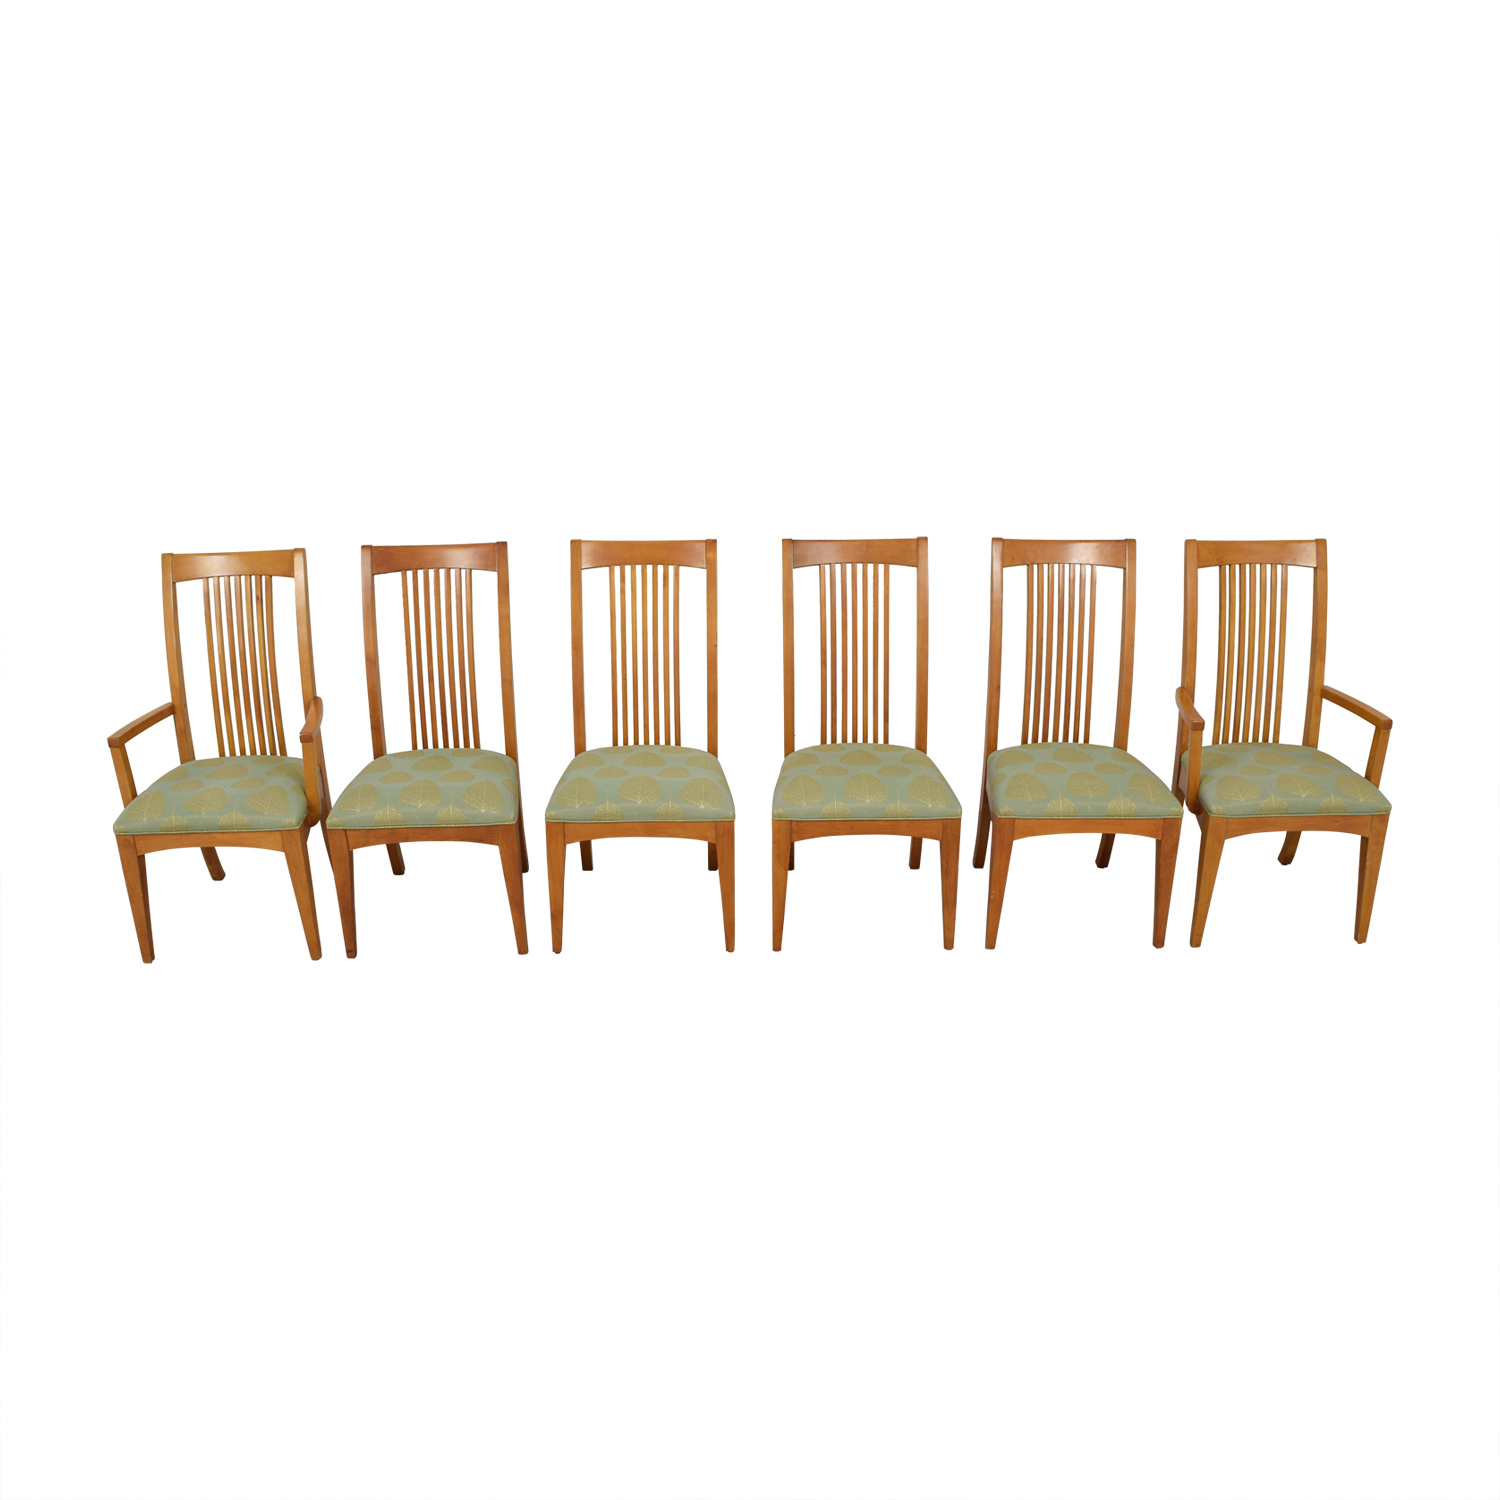 ... Ethan Allen Ethan Allen New Impressions Sage U0026 Gold Upholstered Dining  Chairs ...